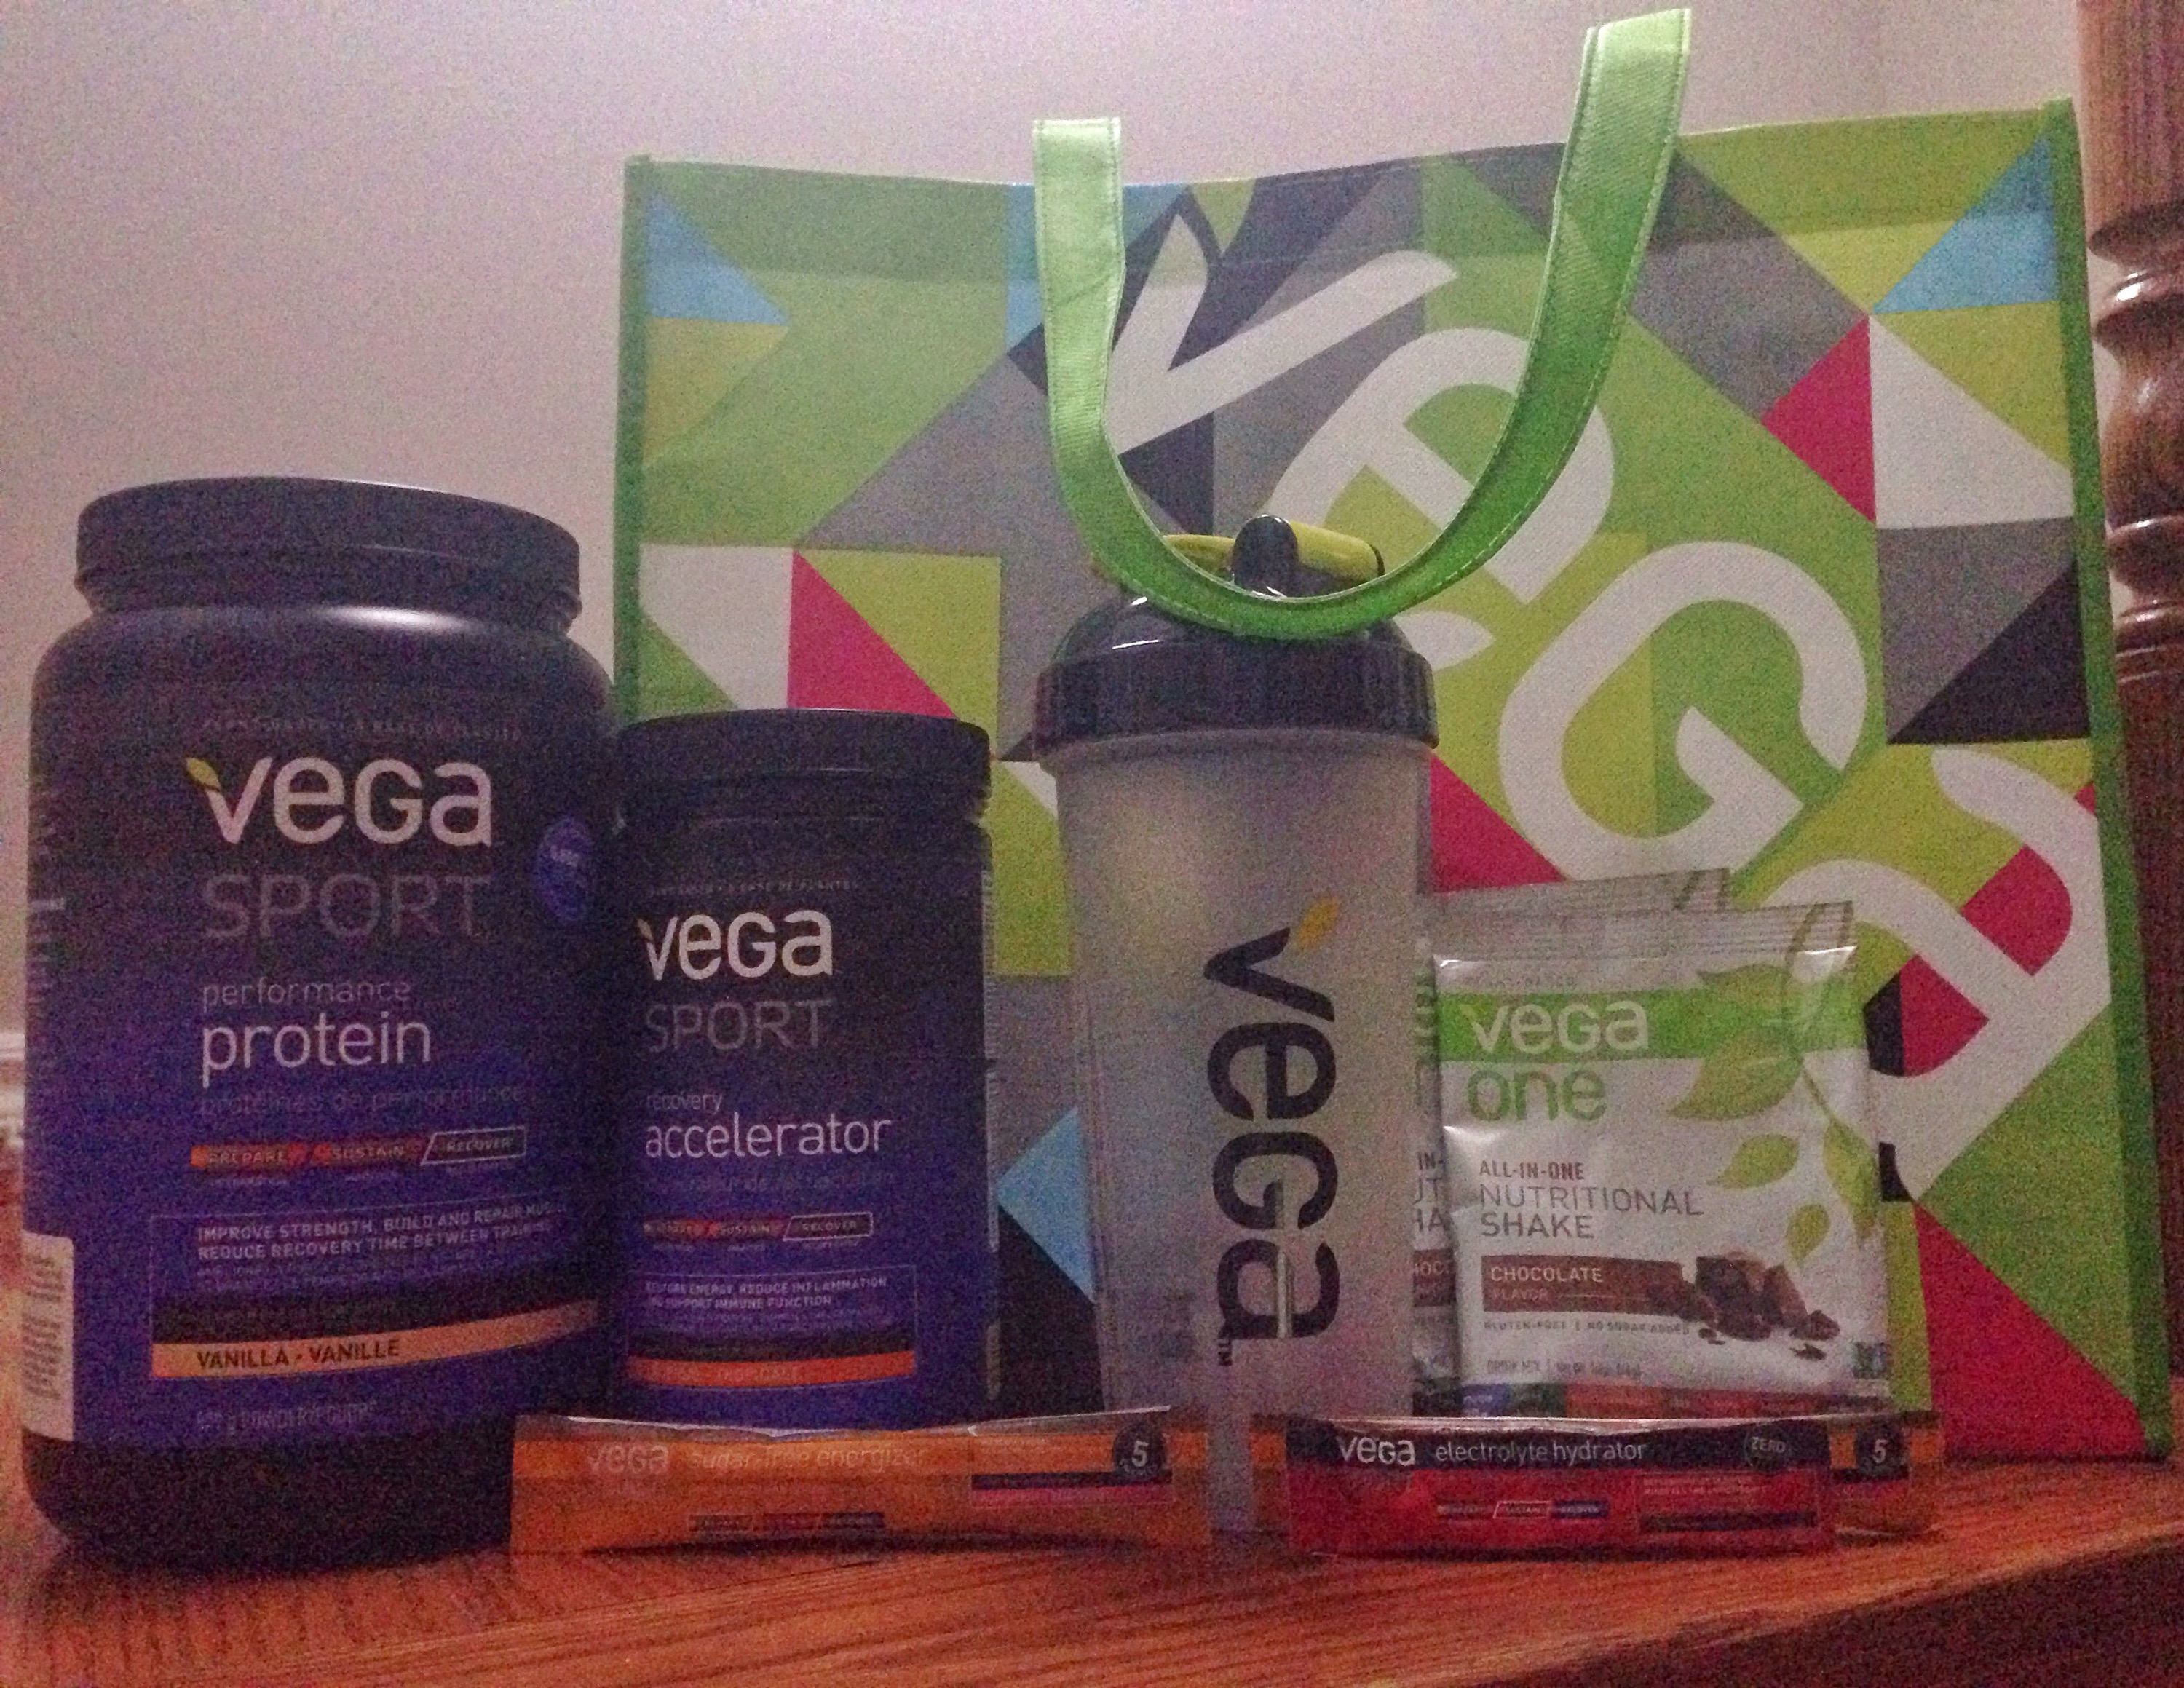 The goodies we were given for attending Vega's Community Influencer Event